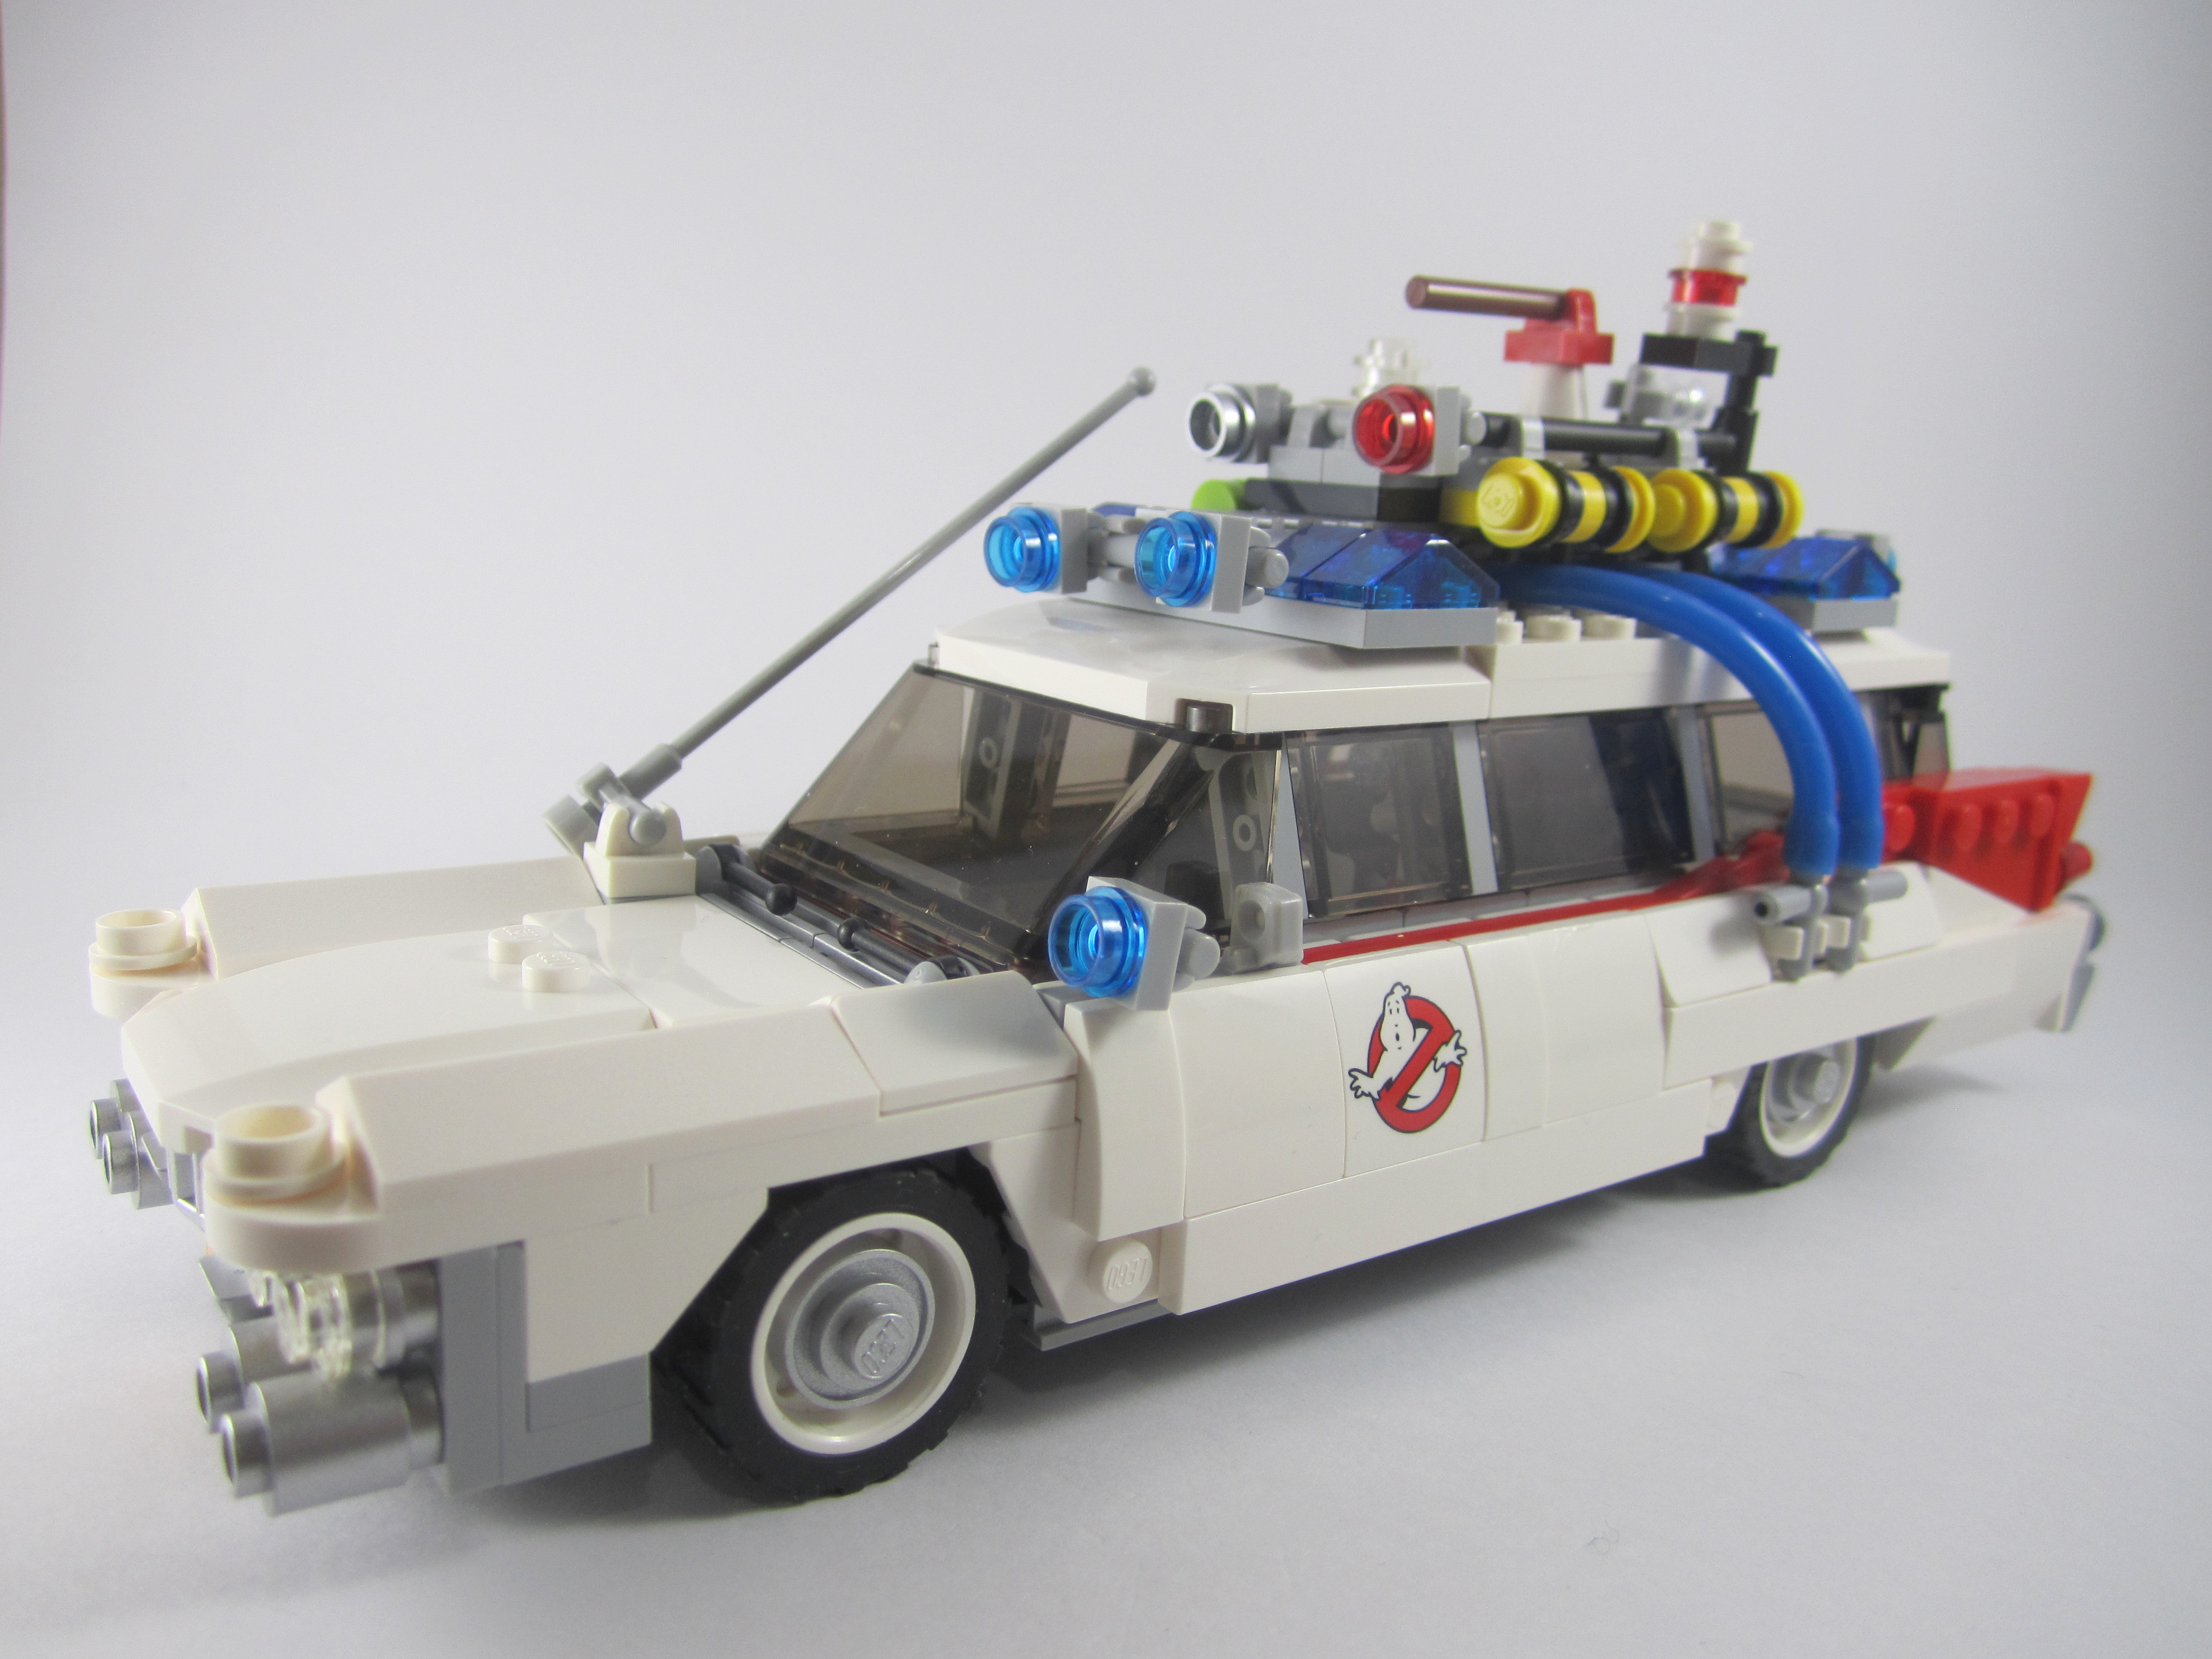 Review Lego 21108 Ghostbusters Ecto 1 Jay S Brick Blog